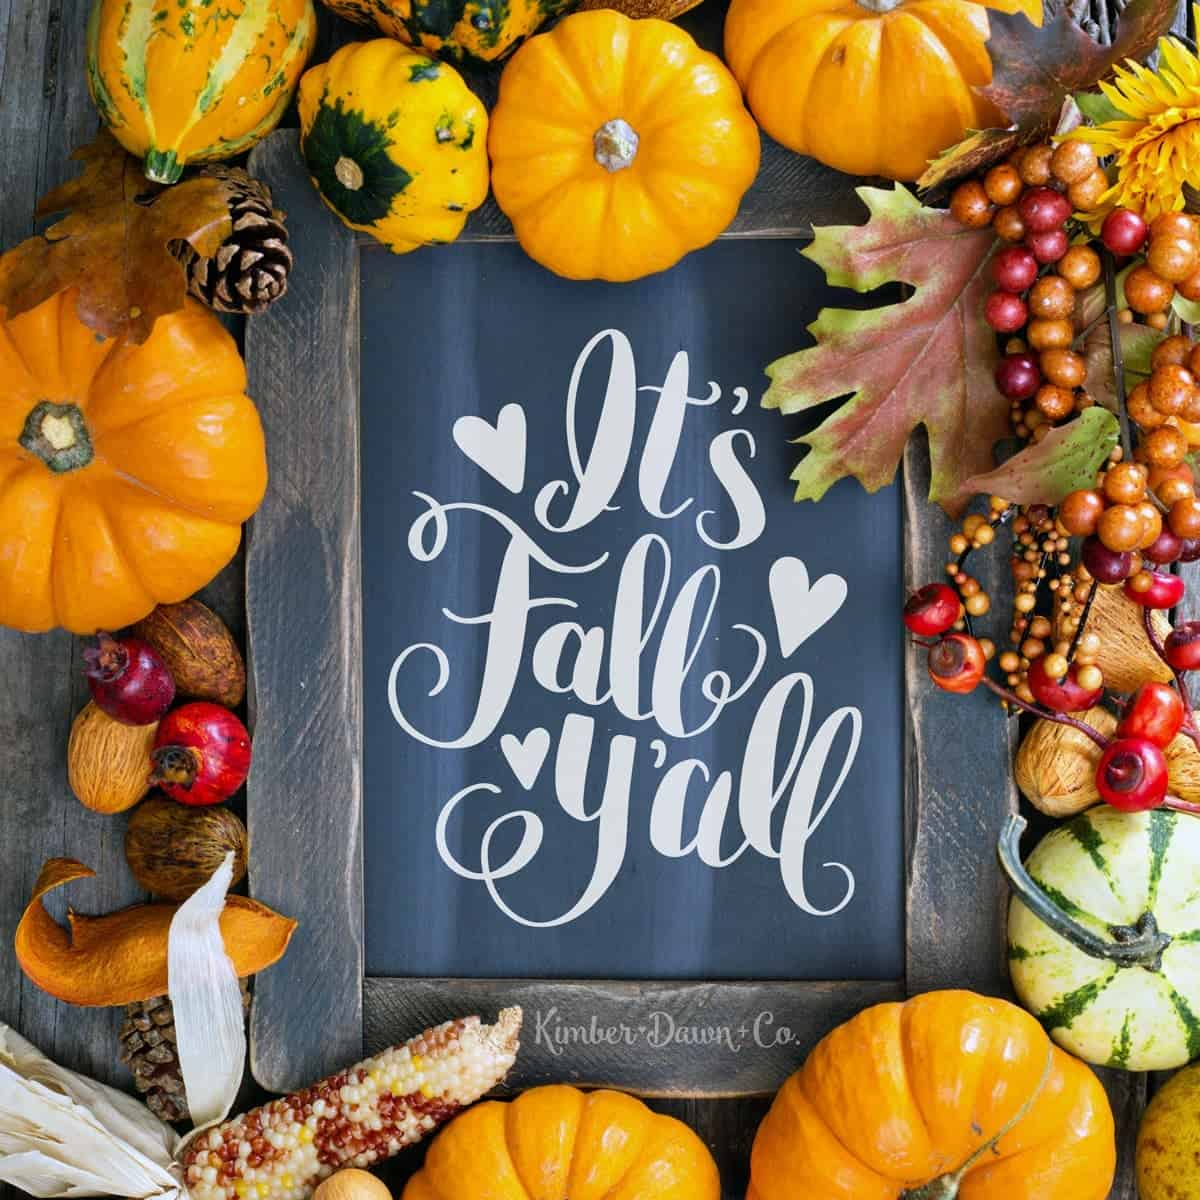 It's Fall Yall - Free Cut File for Silhouette CAMEO + Cricut crafts